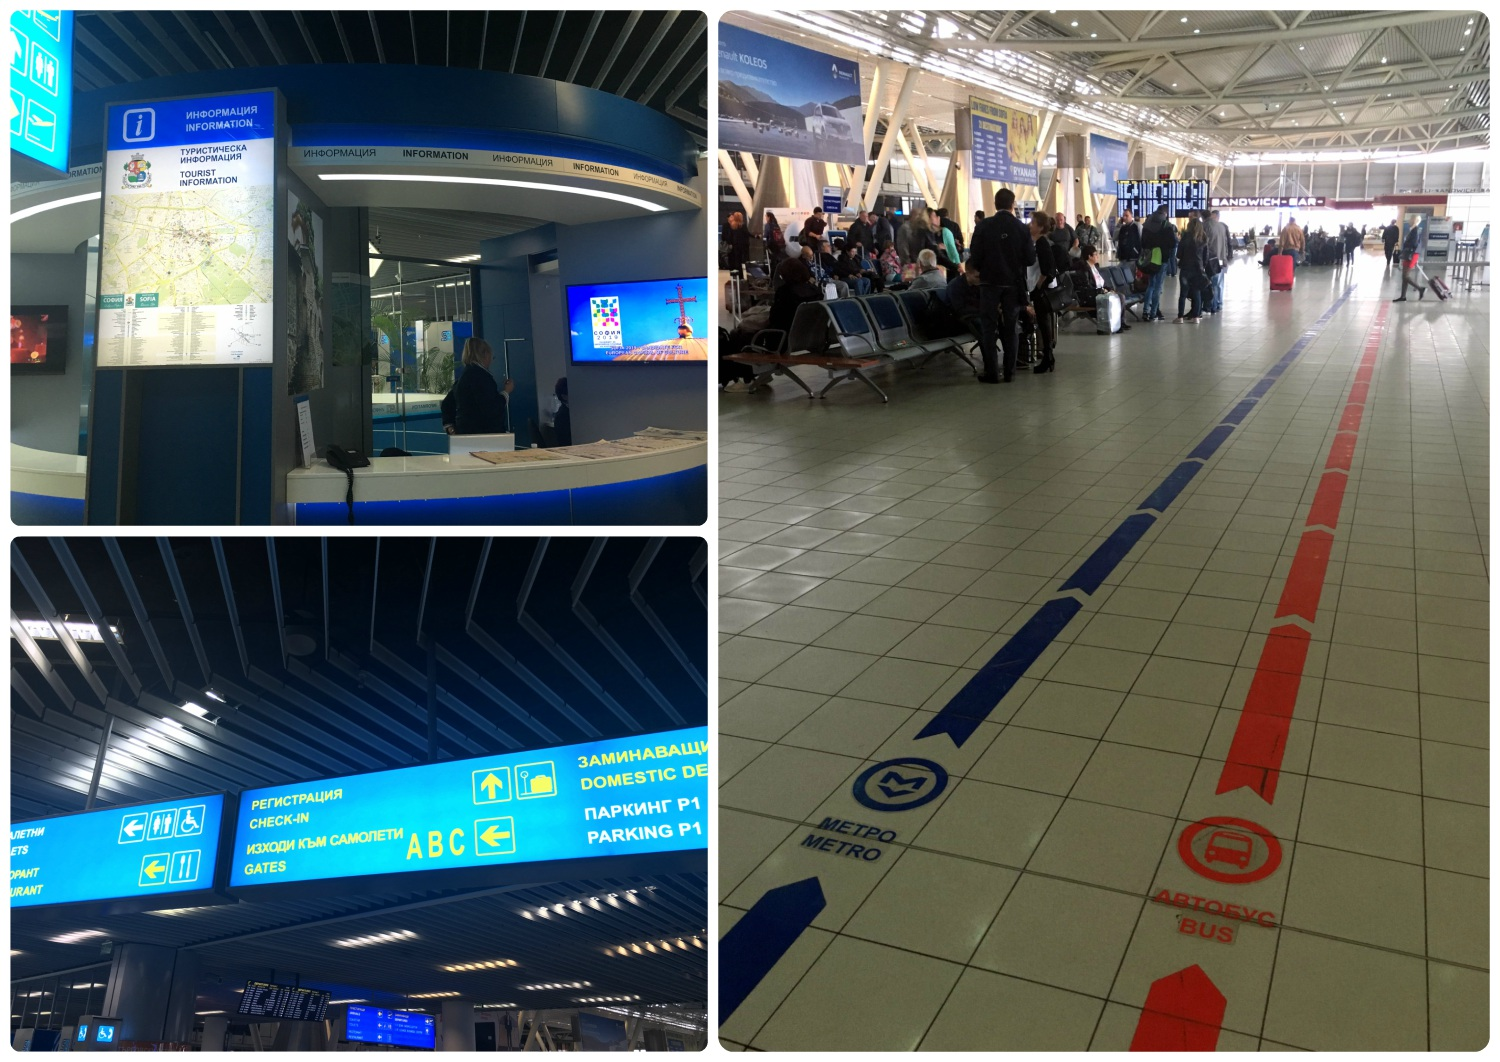 Once you're in the common area in Terminal 1 of the Sofia Airport, follow the lines on the floor for the metro (blue) or the bus (red). If you need assistance, be sure to ask at the information desk for help.